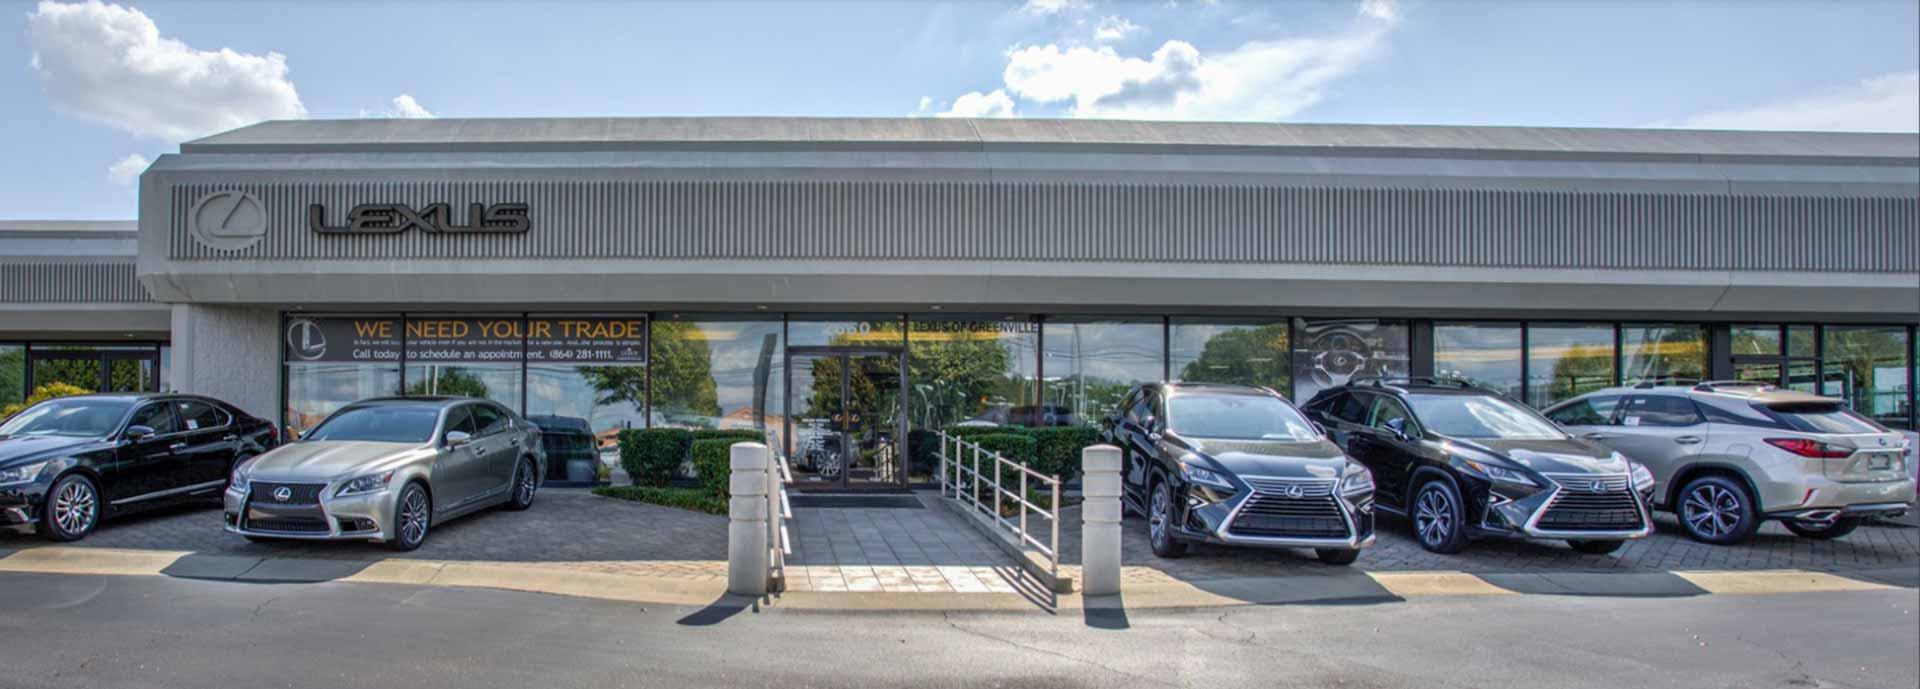 Why Buy from Lexus of Greenville?